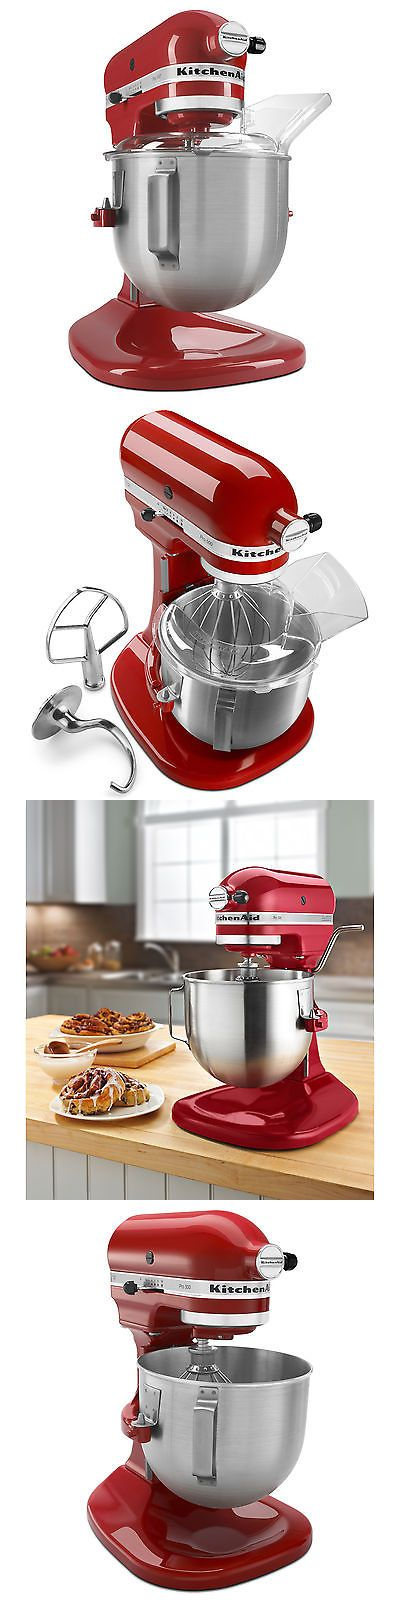 Small Kitchen Appliances: New Kitchenaid Heavy Duty Pro 500 Stand Mixer Lift Ksm500psqer Allmetal 5-Qt Red -> BUY IT NOW ONLY: $259.99 on eBay!